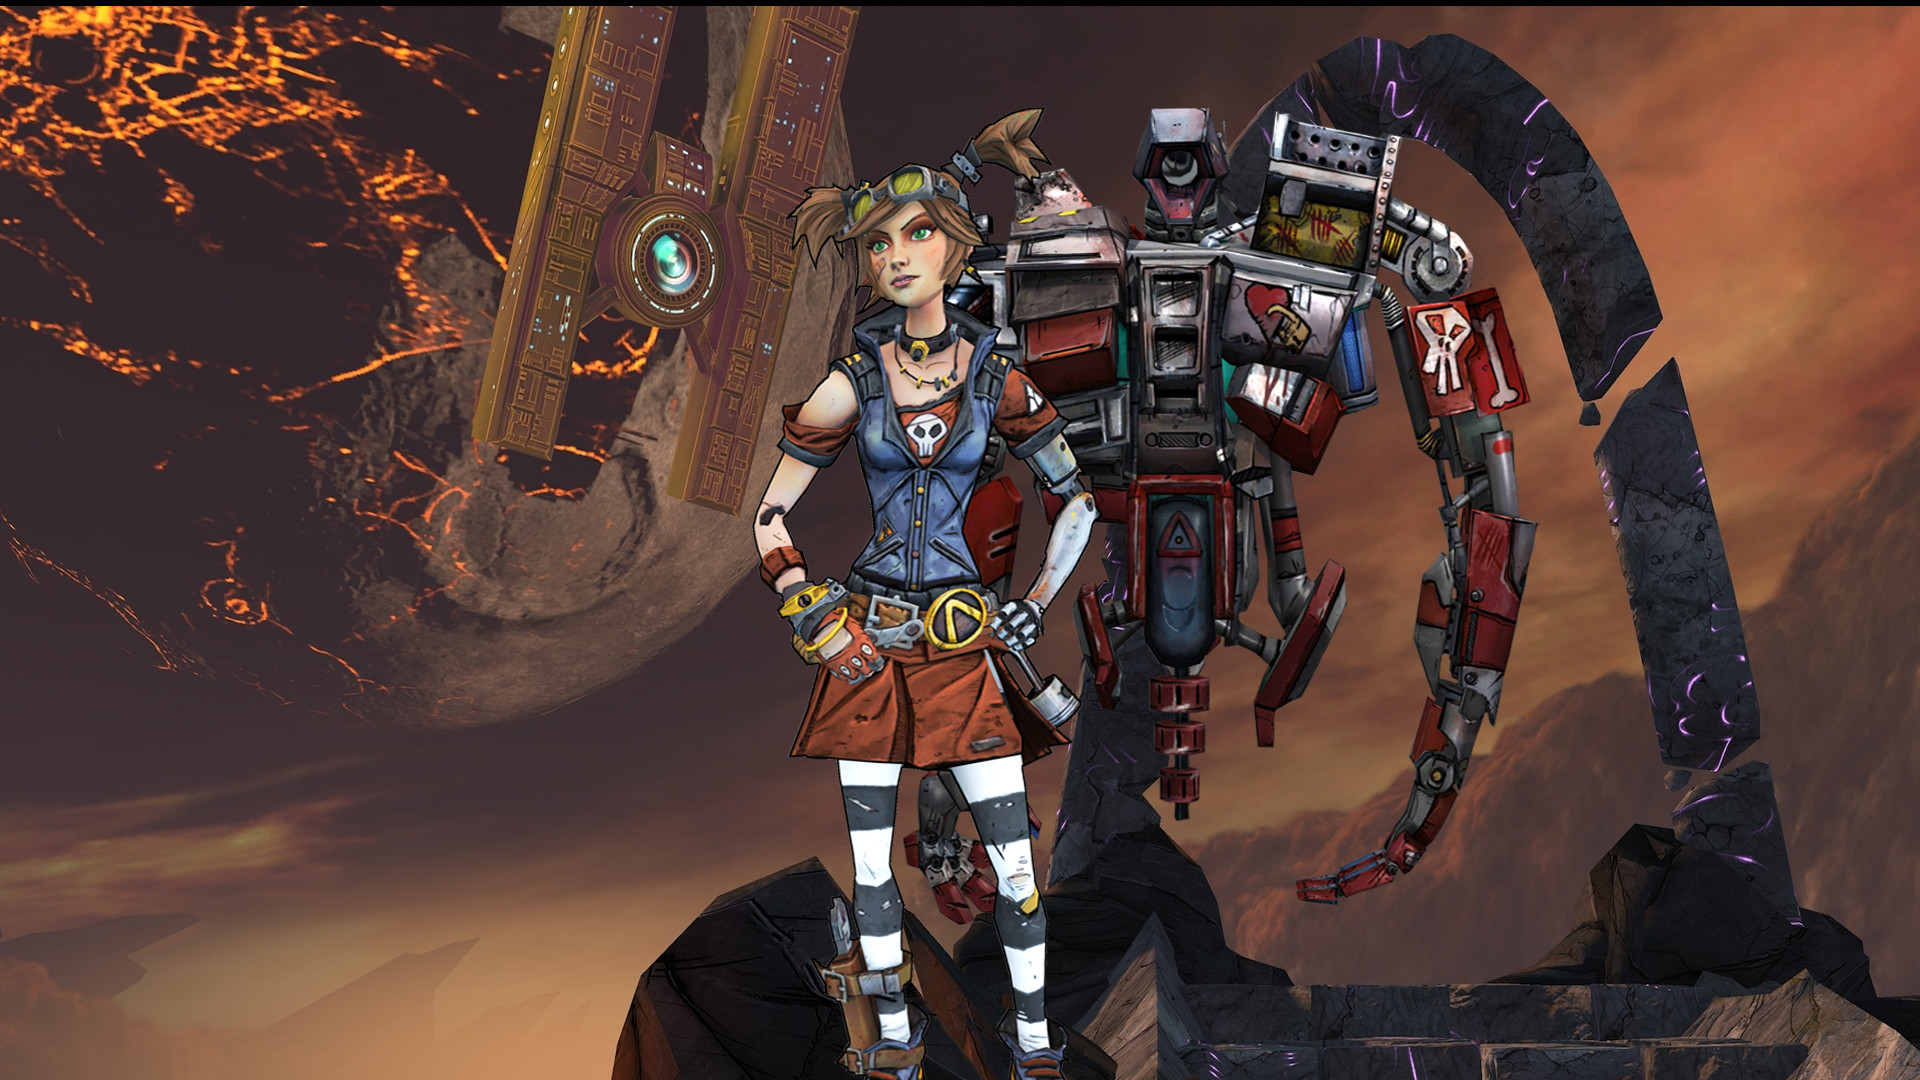 Borderlands 2 Background HD Mechromancer (80+ images)